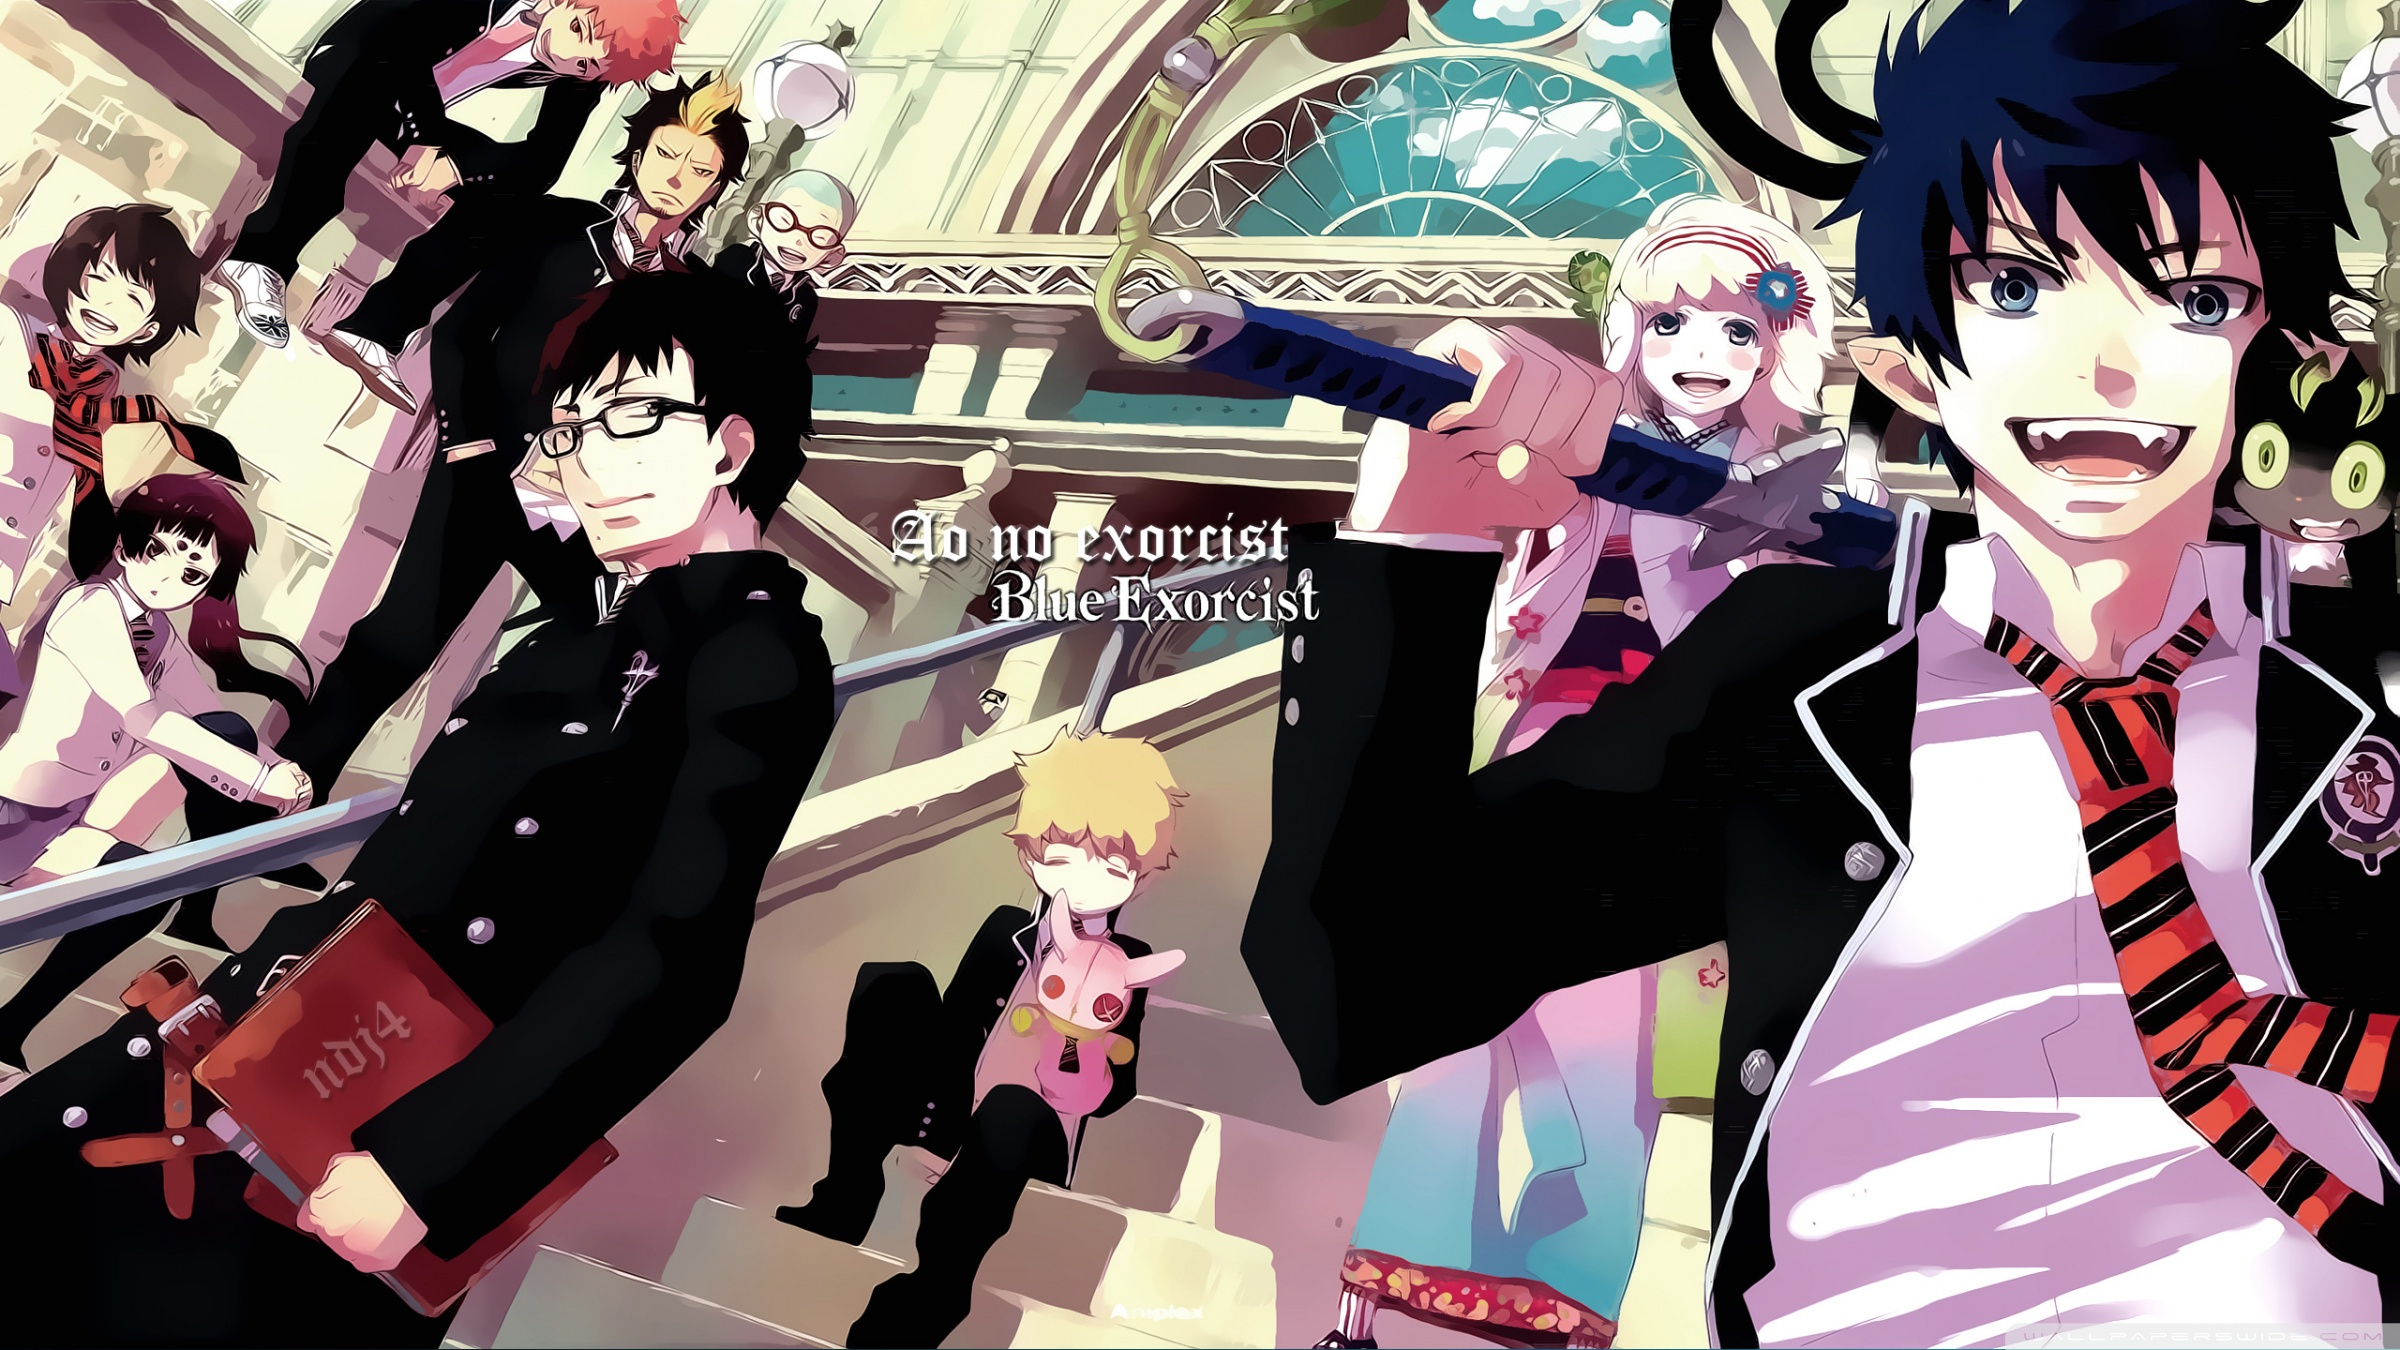 The Anime Kingdom Images Blue Exorcist Hd Wallpaper And Background